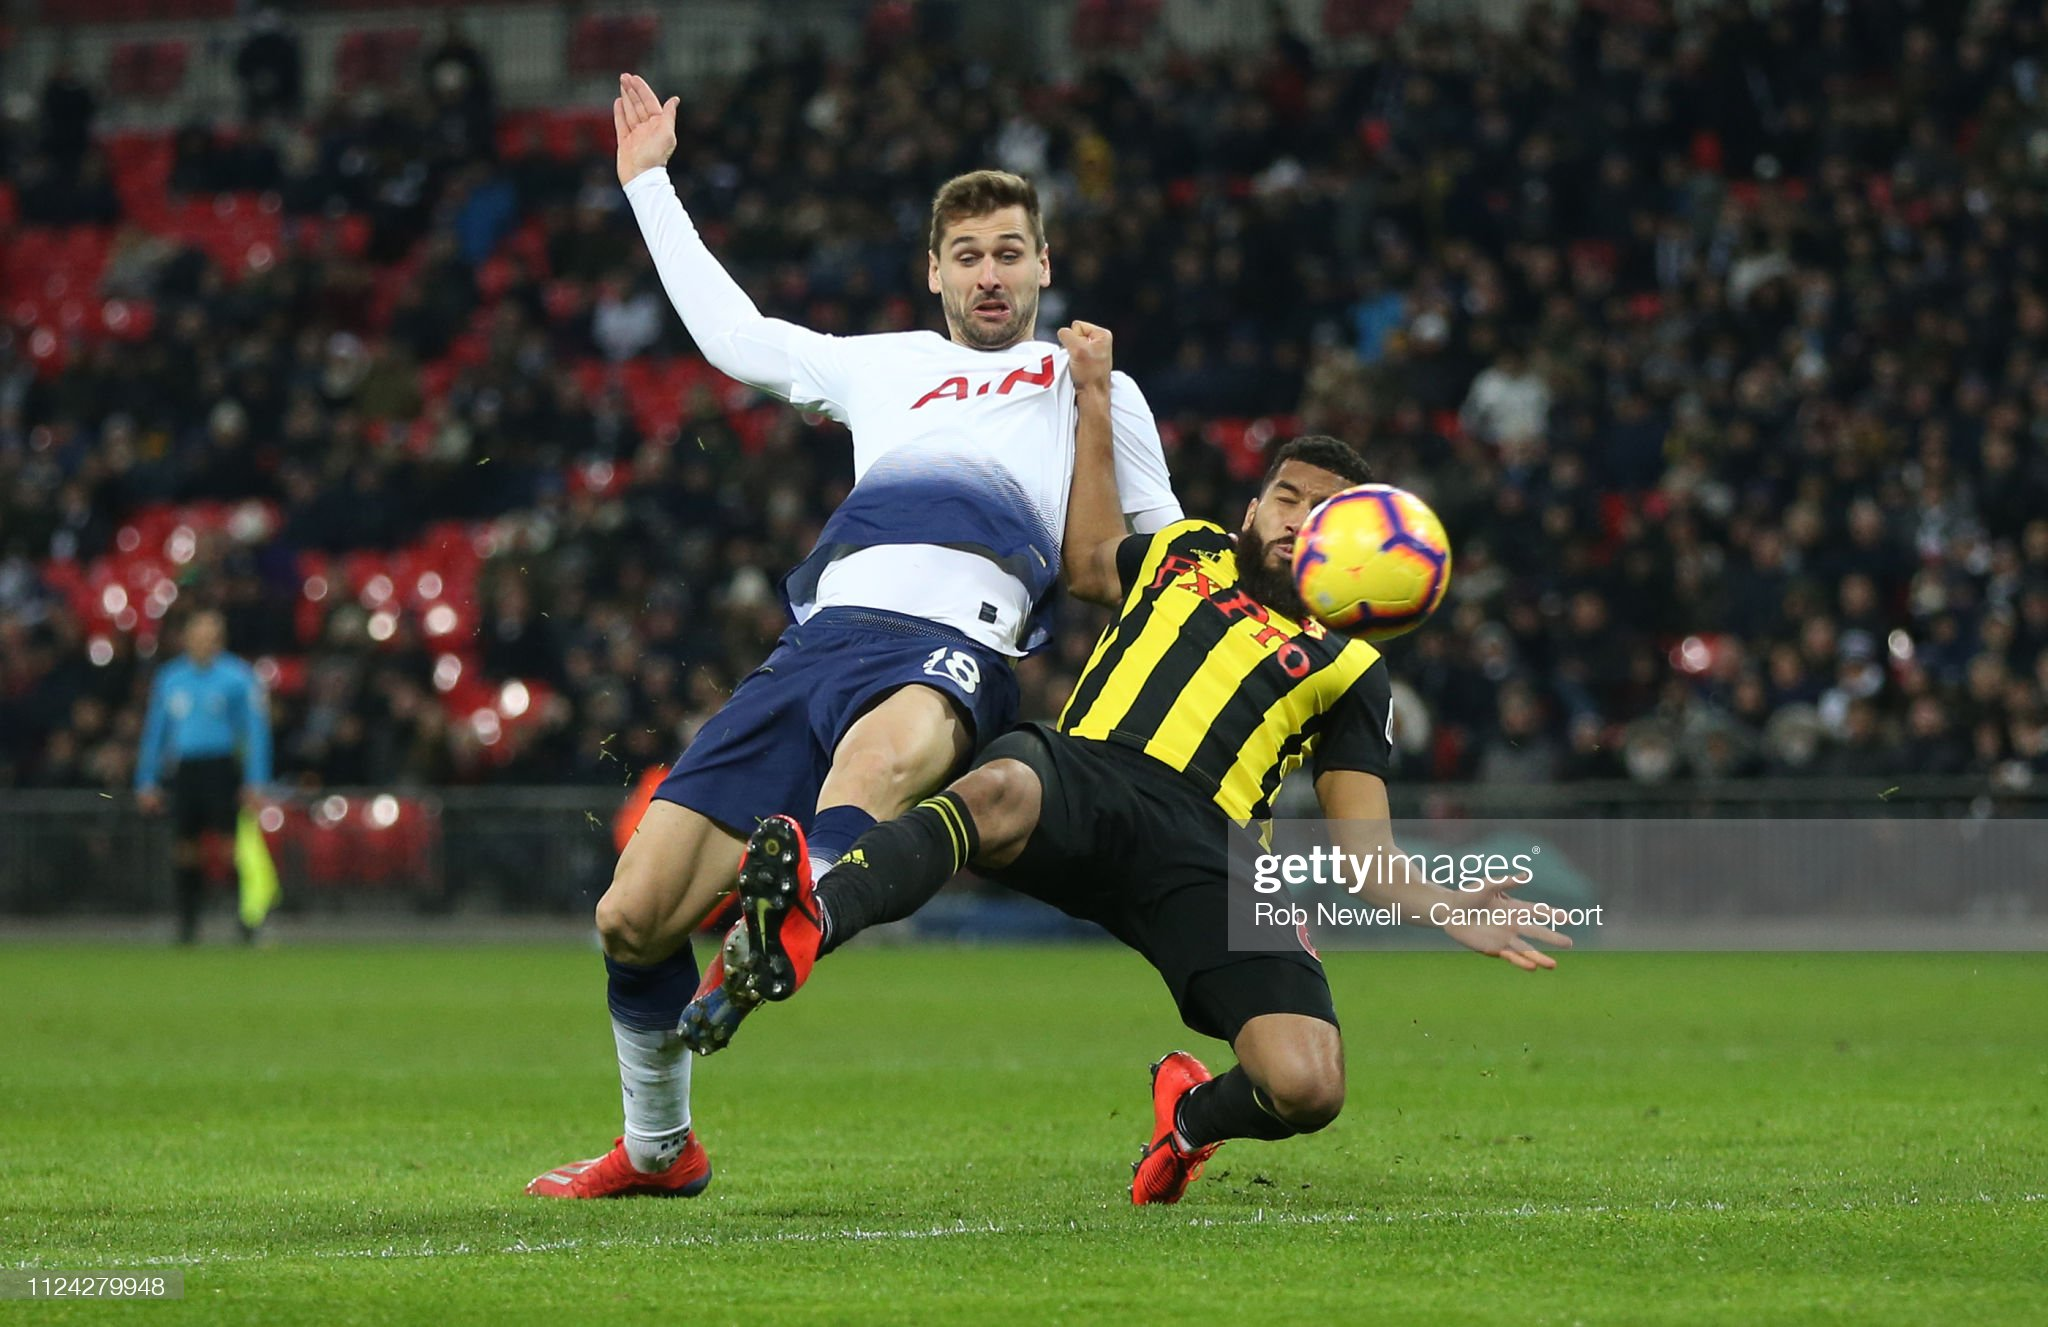 Tottenham v Watford preview, prediction and odds